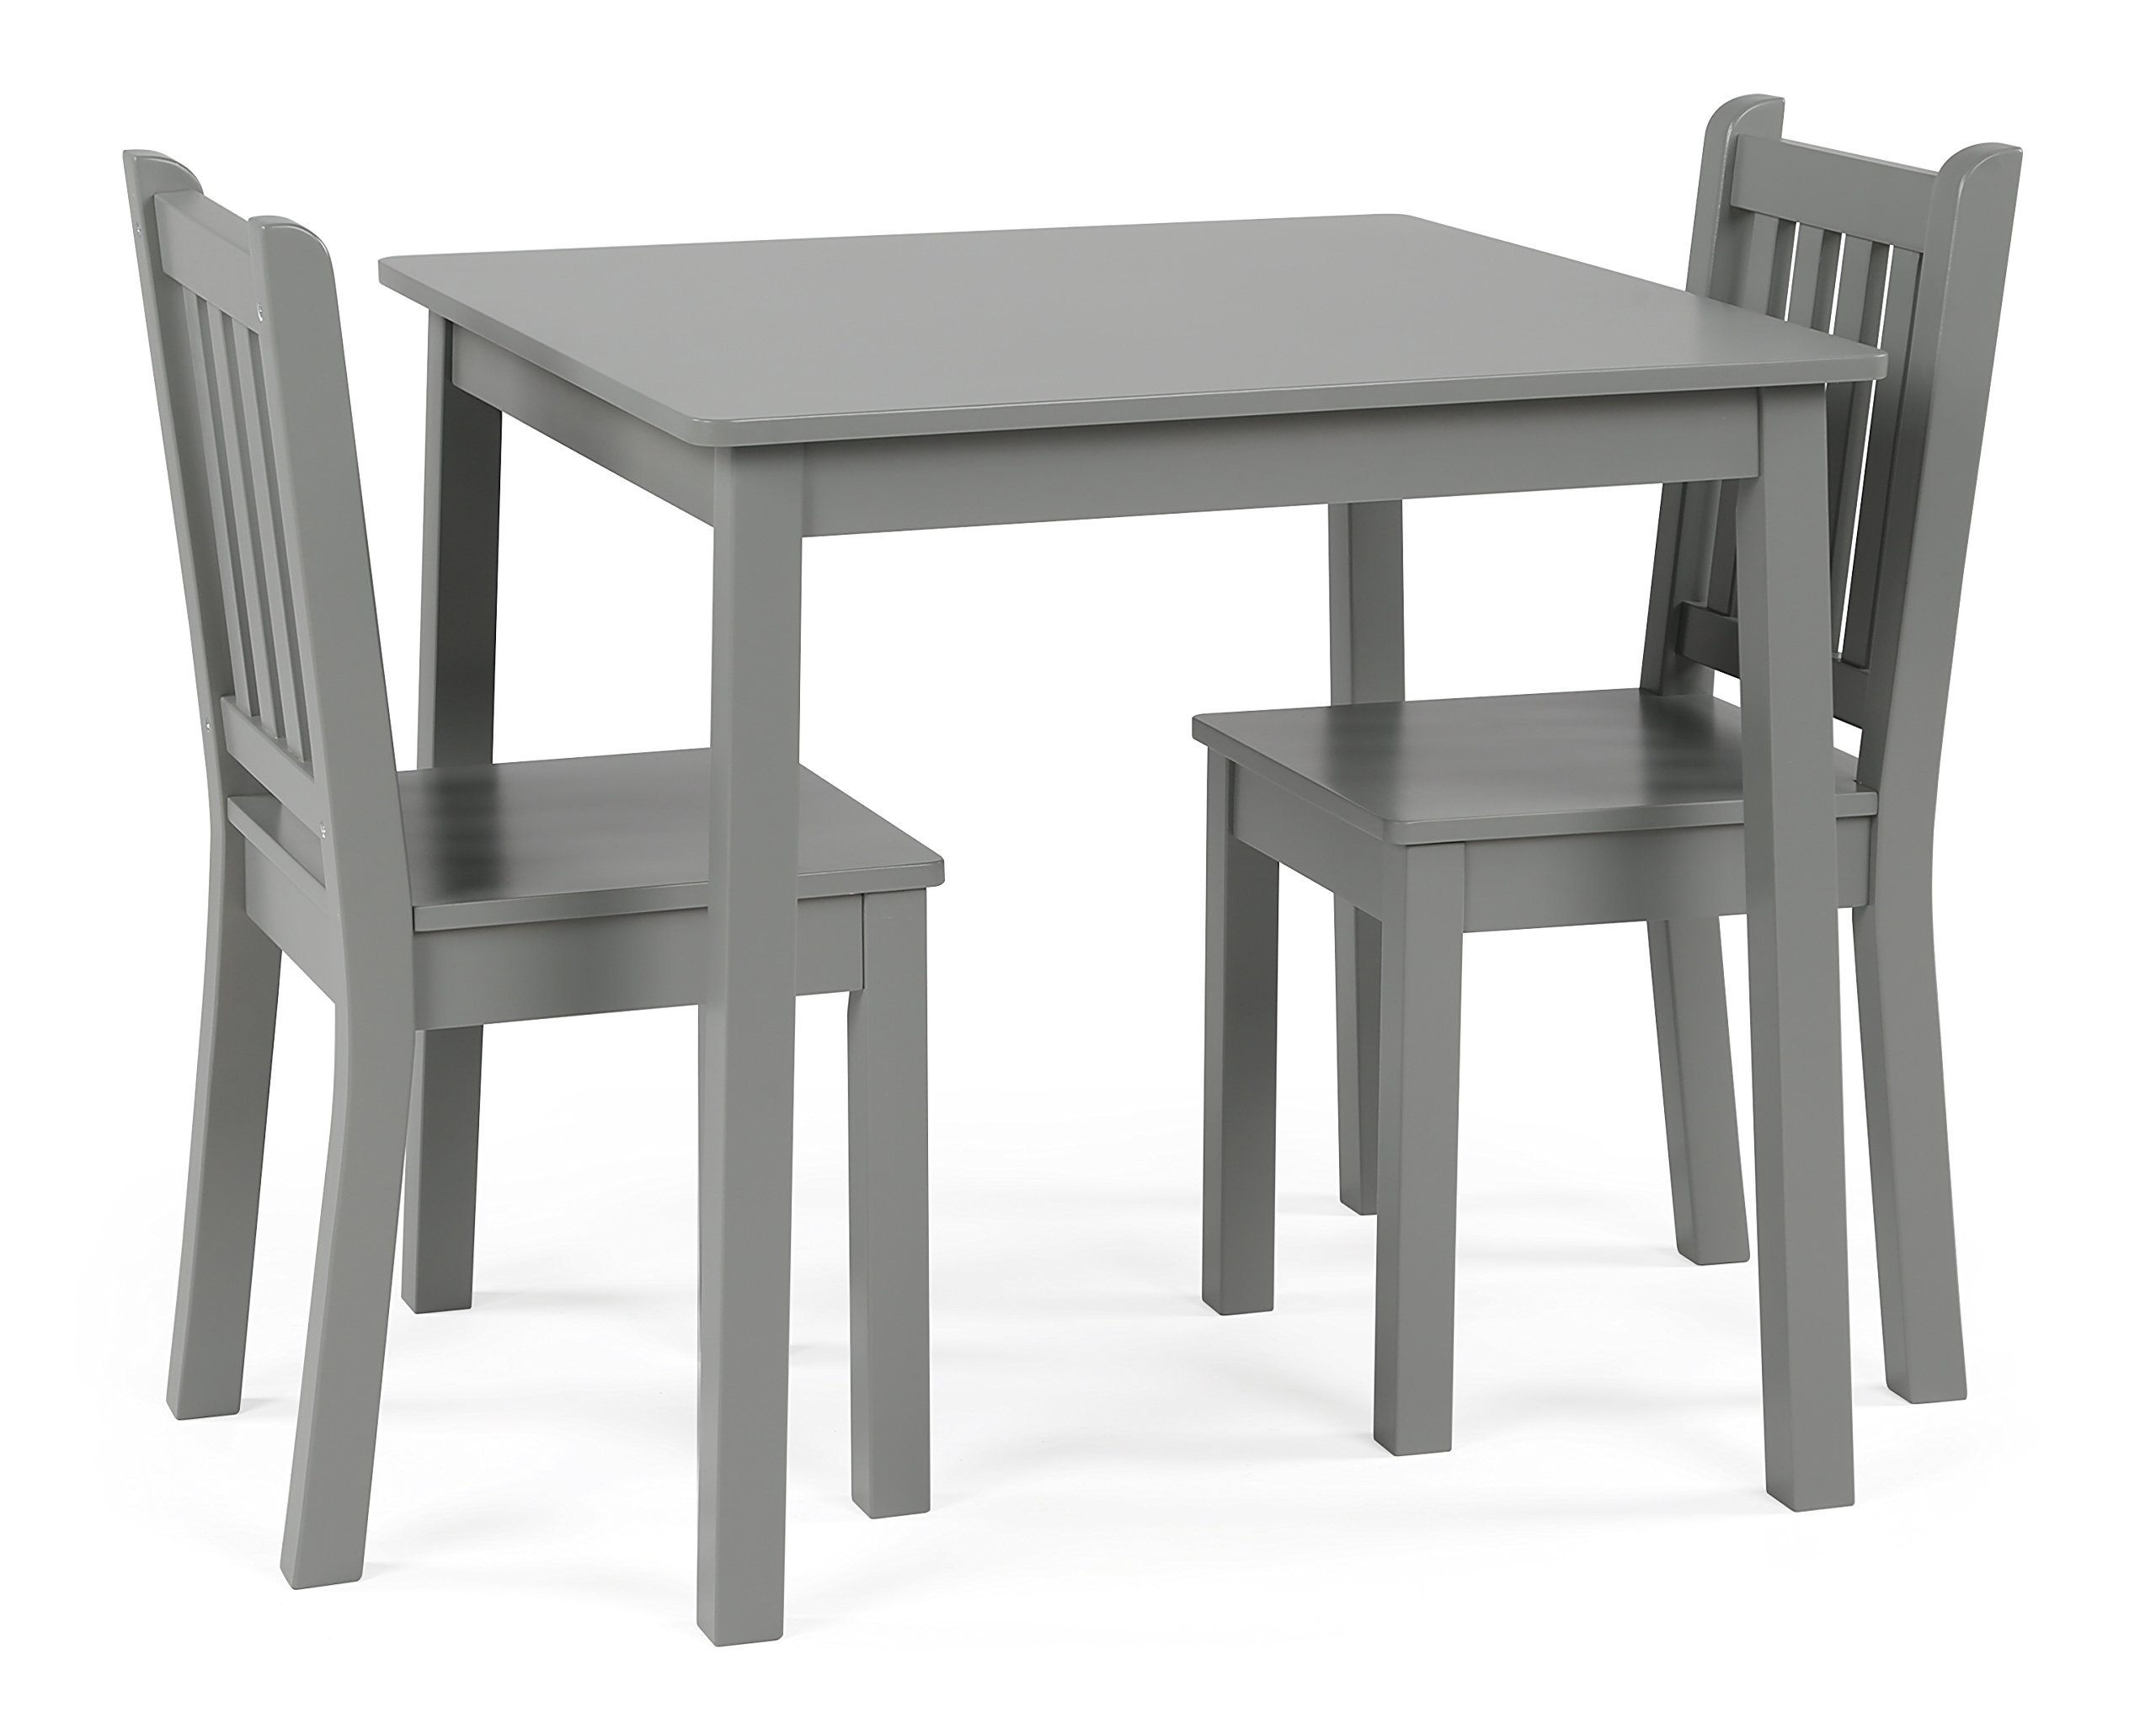 Curious Lion Wood Kids Table and Chairs 3 Piece Set (Grey)